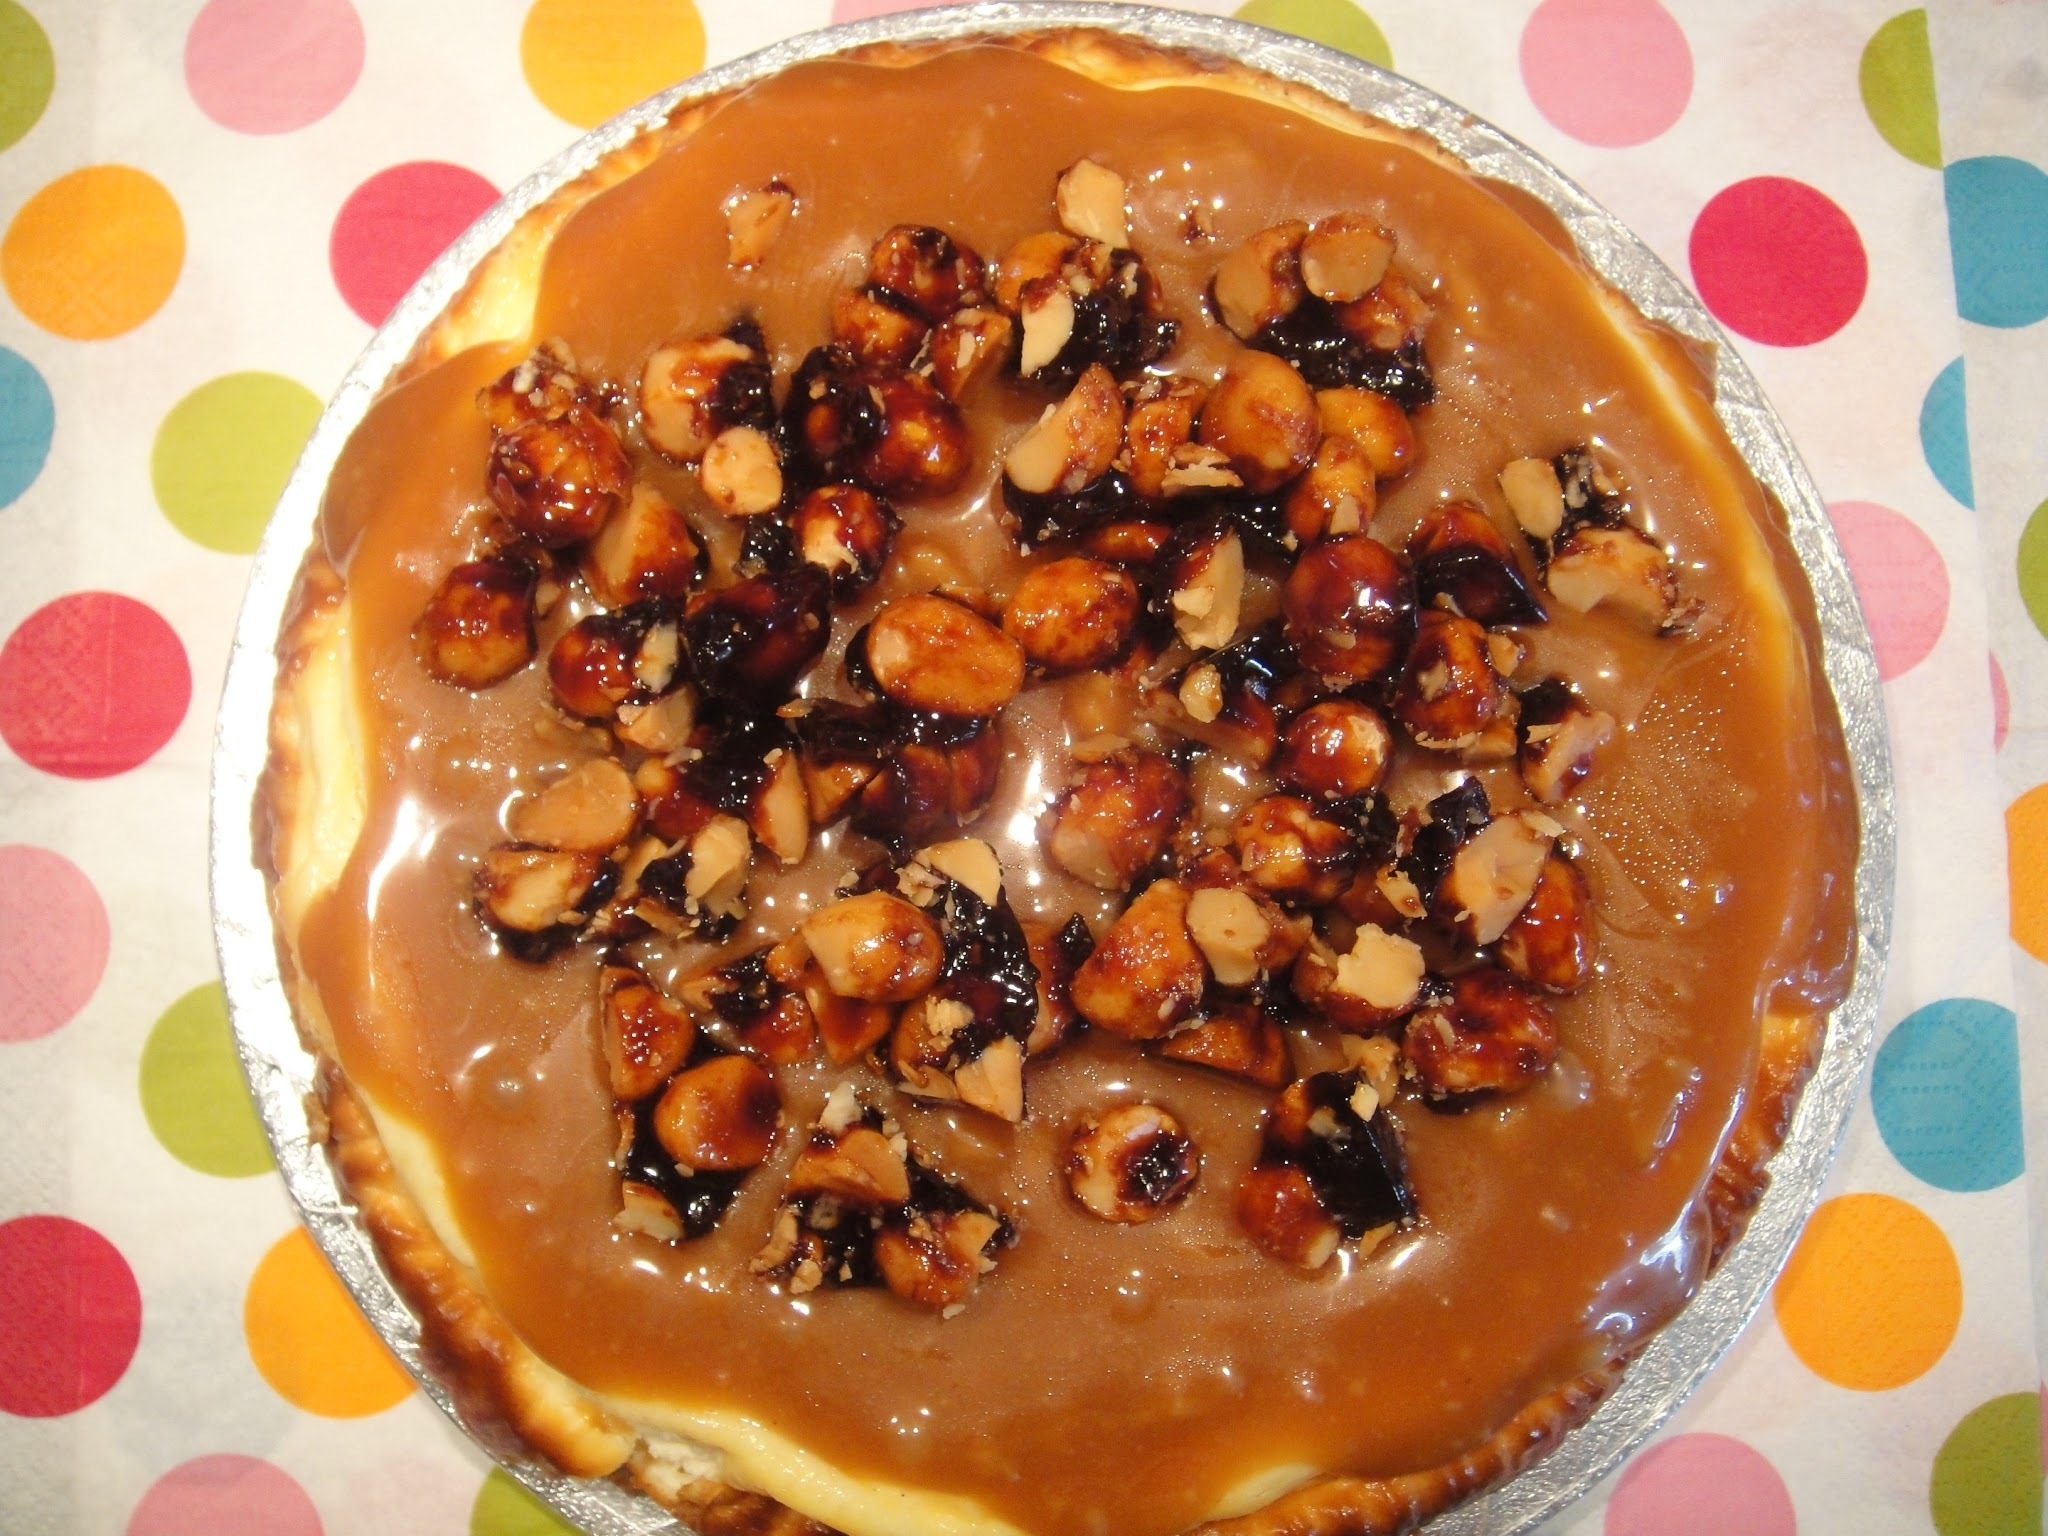 Ottolenghi's Caramel and Macadamia Cheesecake